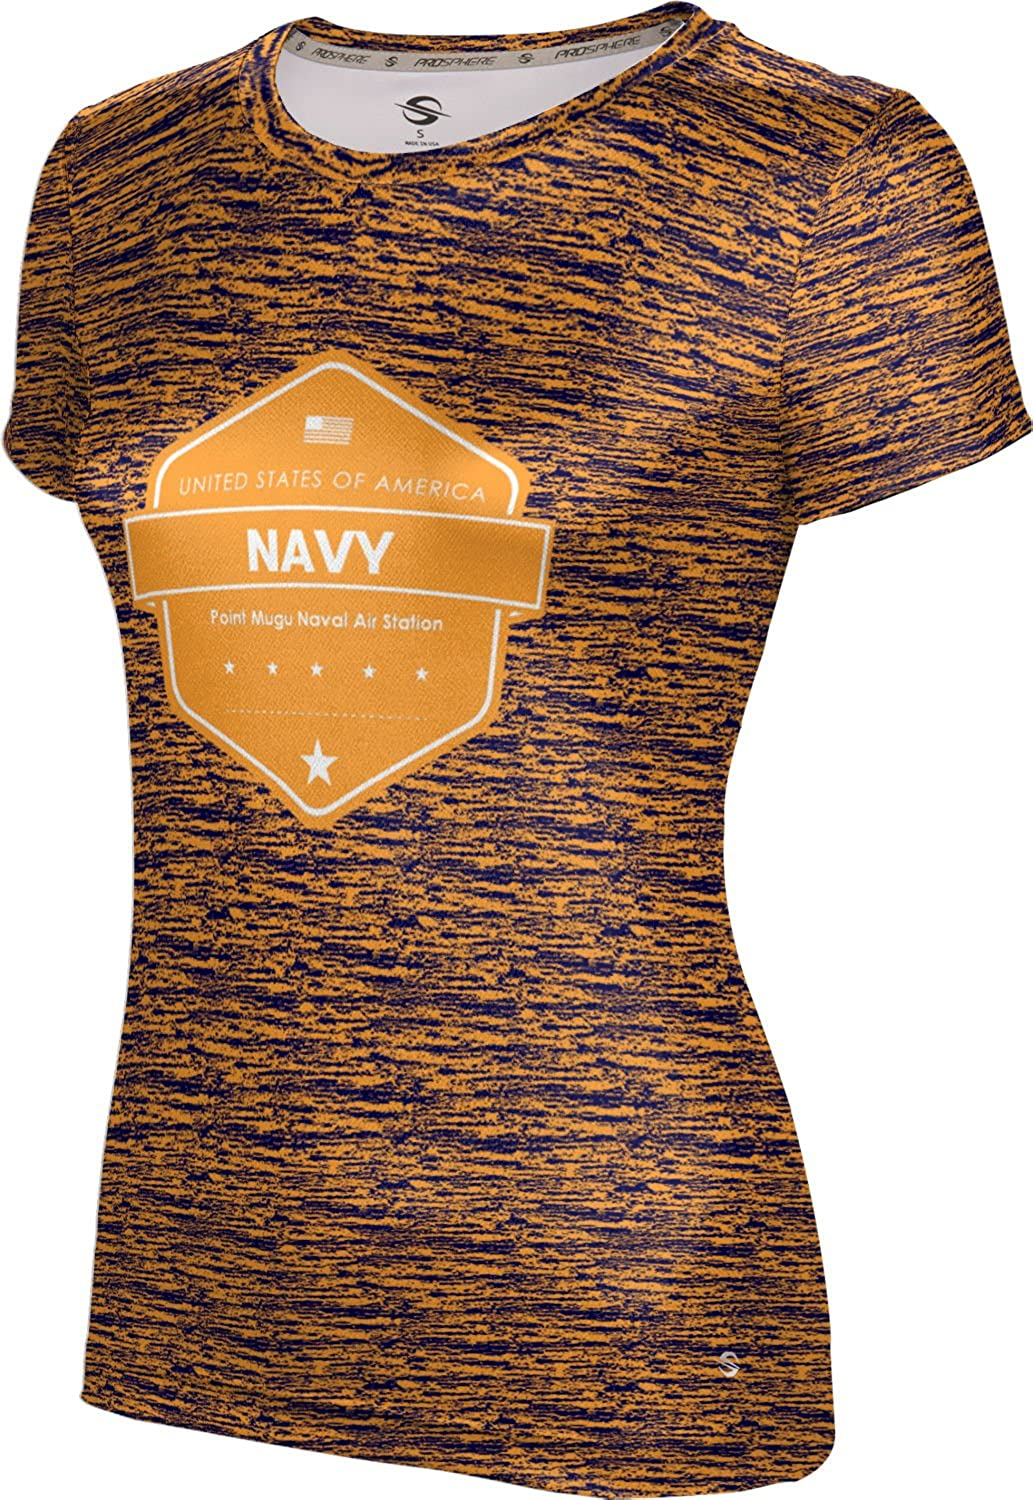 ProSphere Women's Point Mugu Naval Air Station Military Brushed Tech Tee